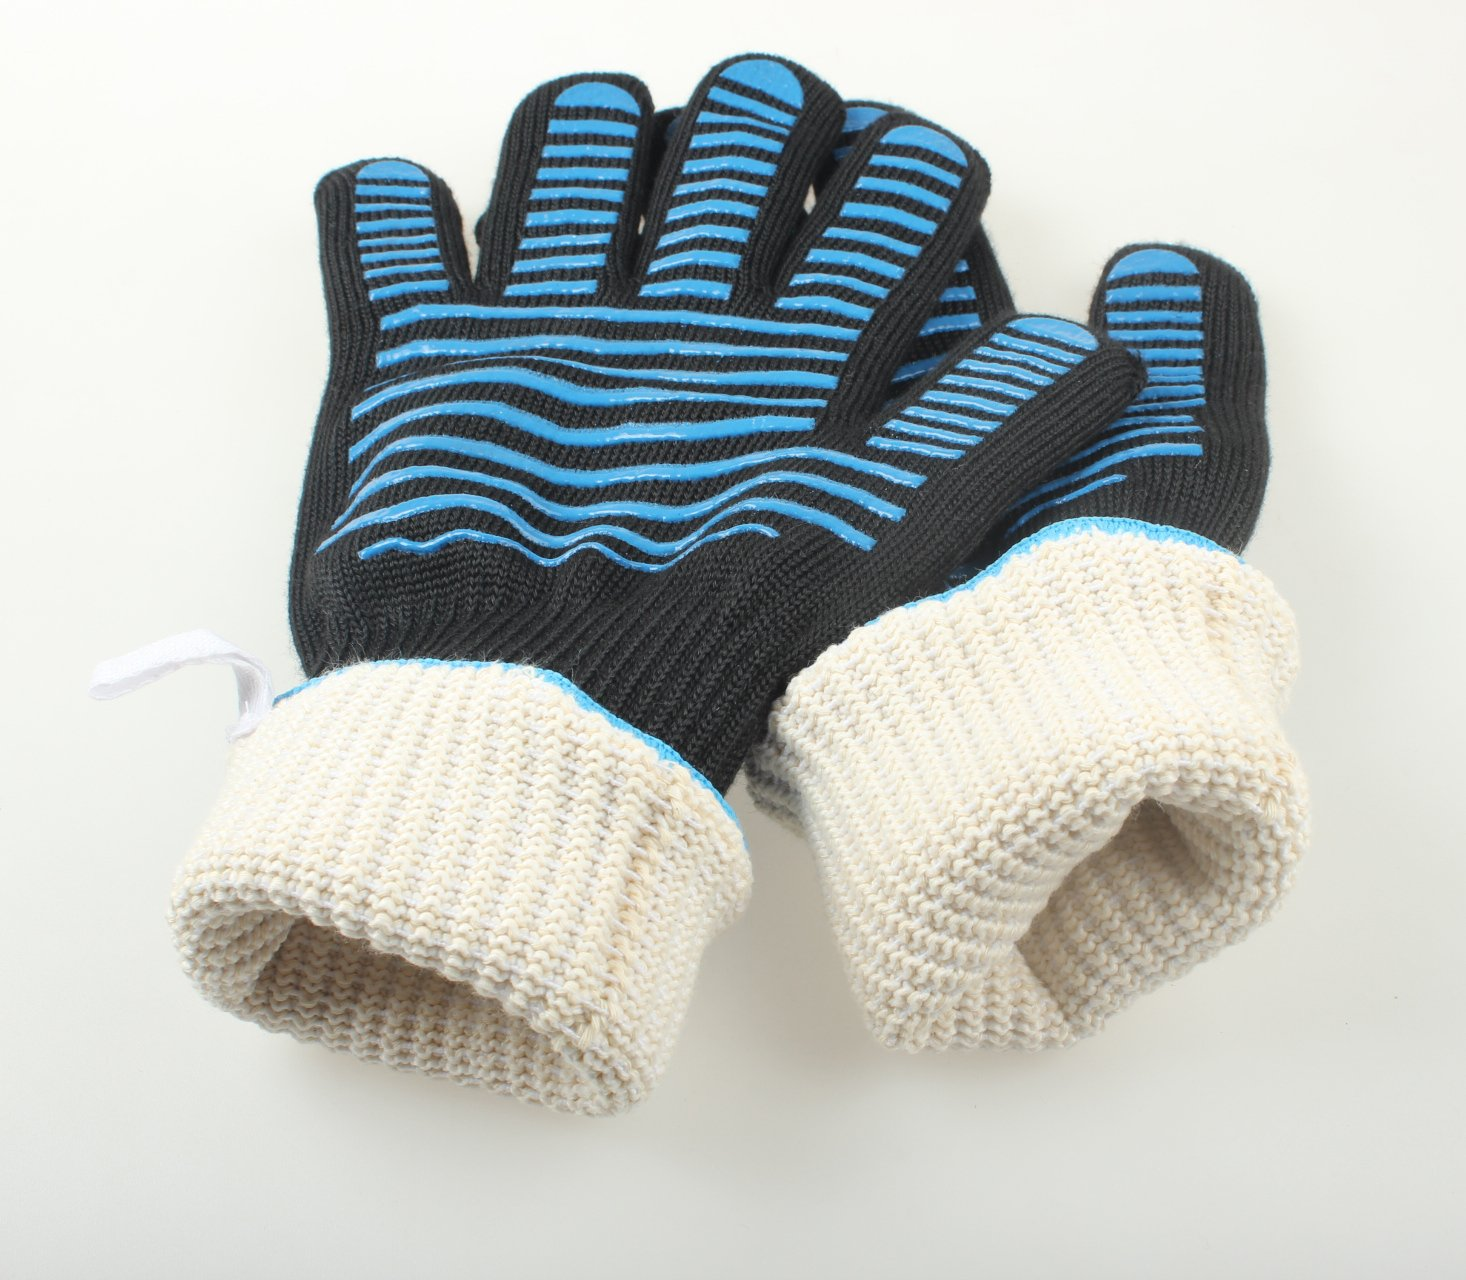 Nomex &Silicone Heat Resistant Oven Gloves,Long Sleeve Oven Gloves With FingersFor Grilling,Cooking, Baking,1 Pair by ARCLIBER (Image #4)